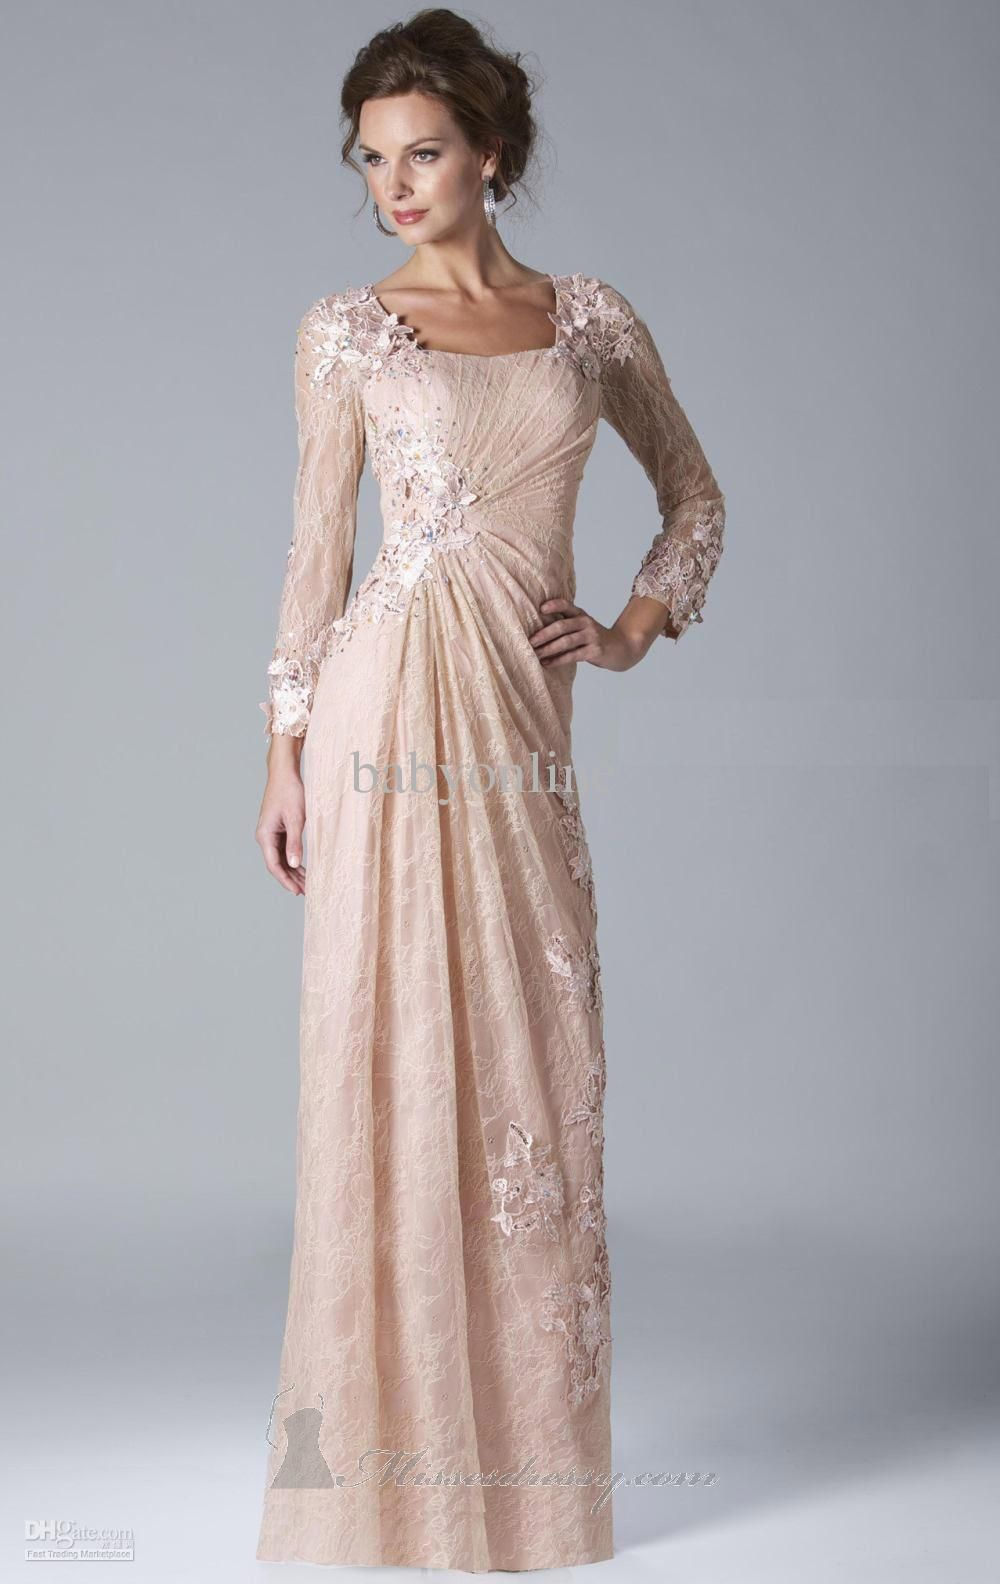 Sexy Lace Evening Dresses Long Sleeves Beaded Mother Of The Bride Dresses  w034 f91b40d2e395